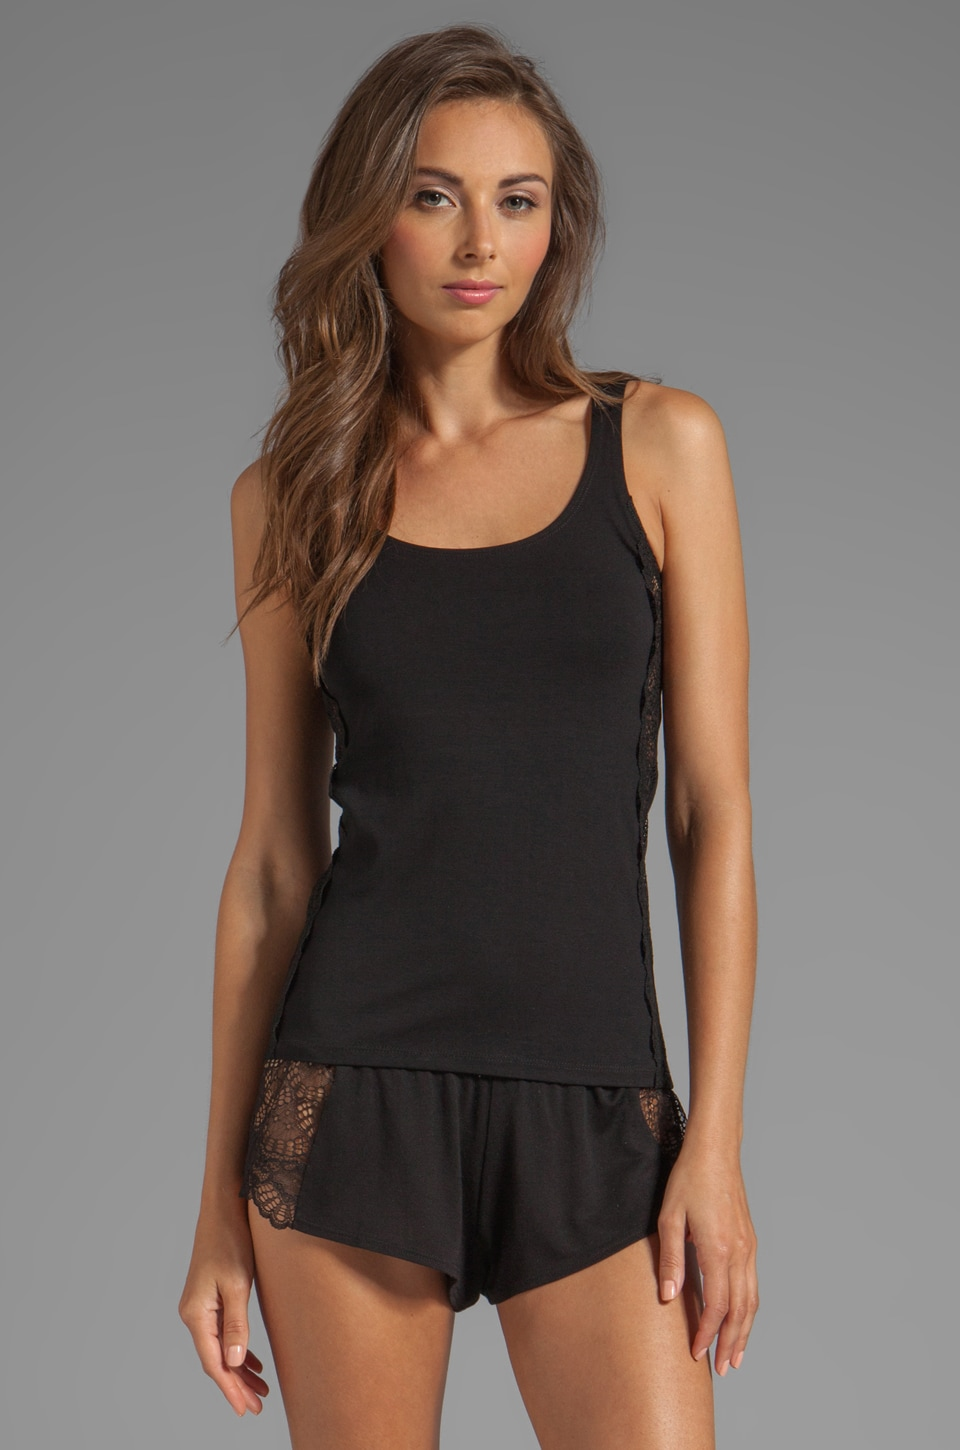 Only Hearts So Fine Lace Skinny Tank in Black/Black